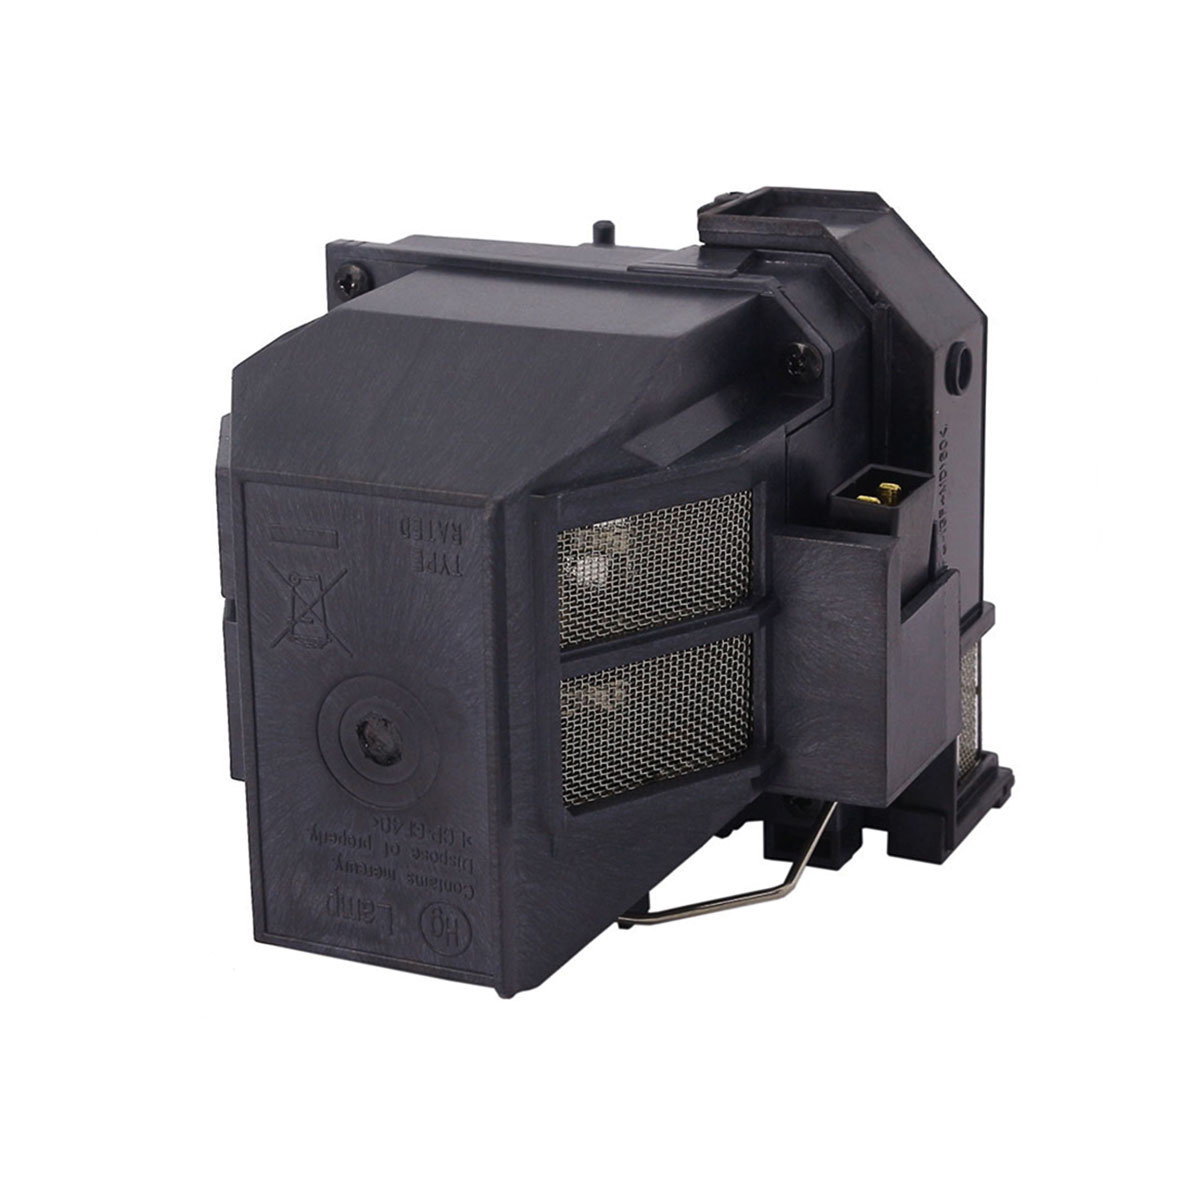 Original Philips Projector Lamp Replacement with Housing for Epson PowerLite 575W - image 1 of 5